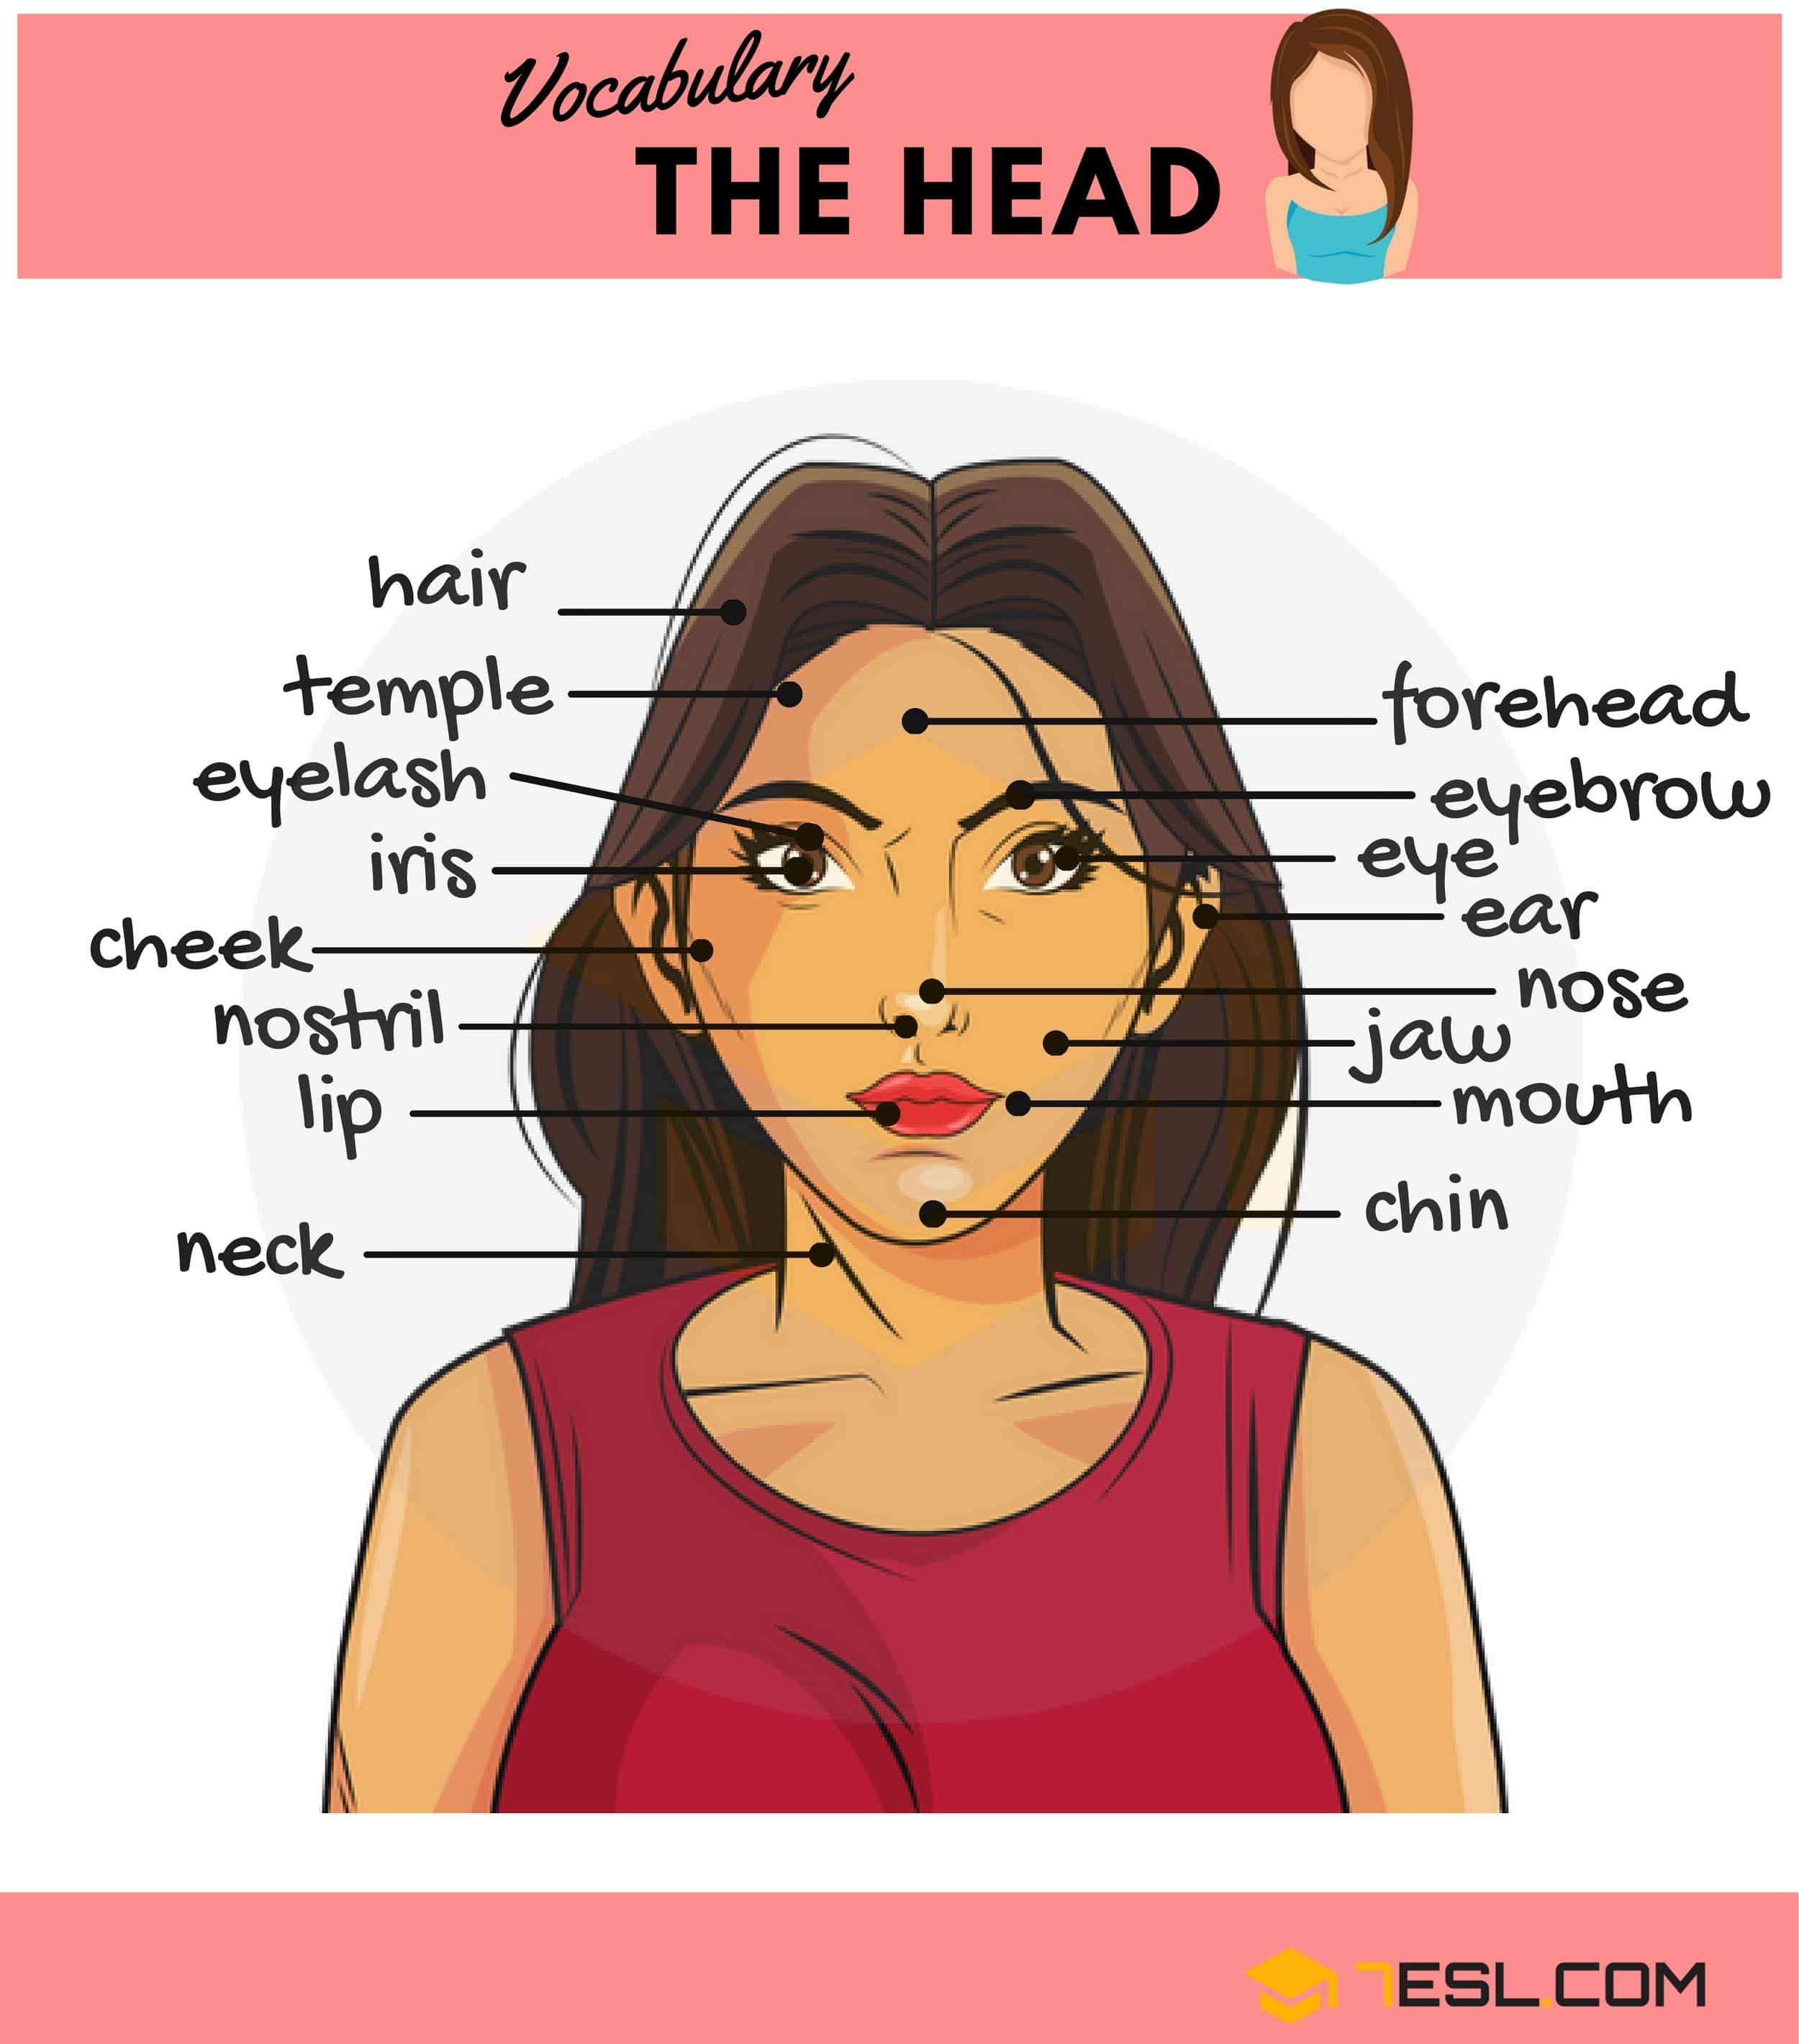 Worksheet Of Parts Of Face